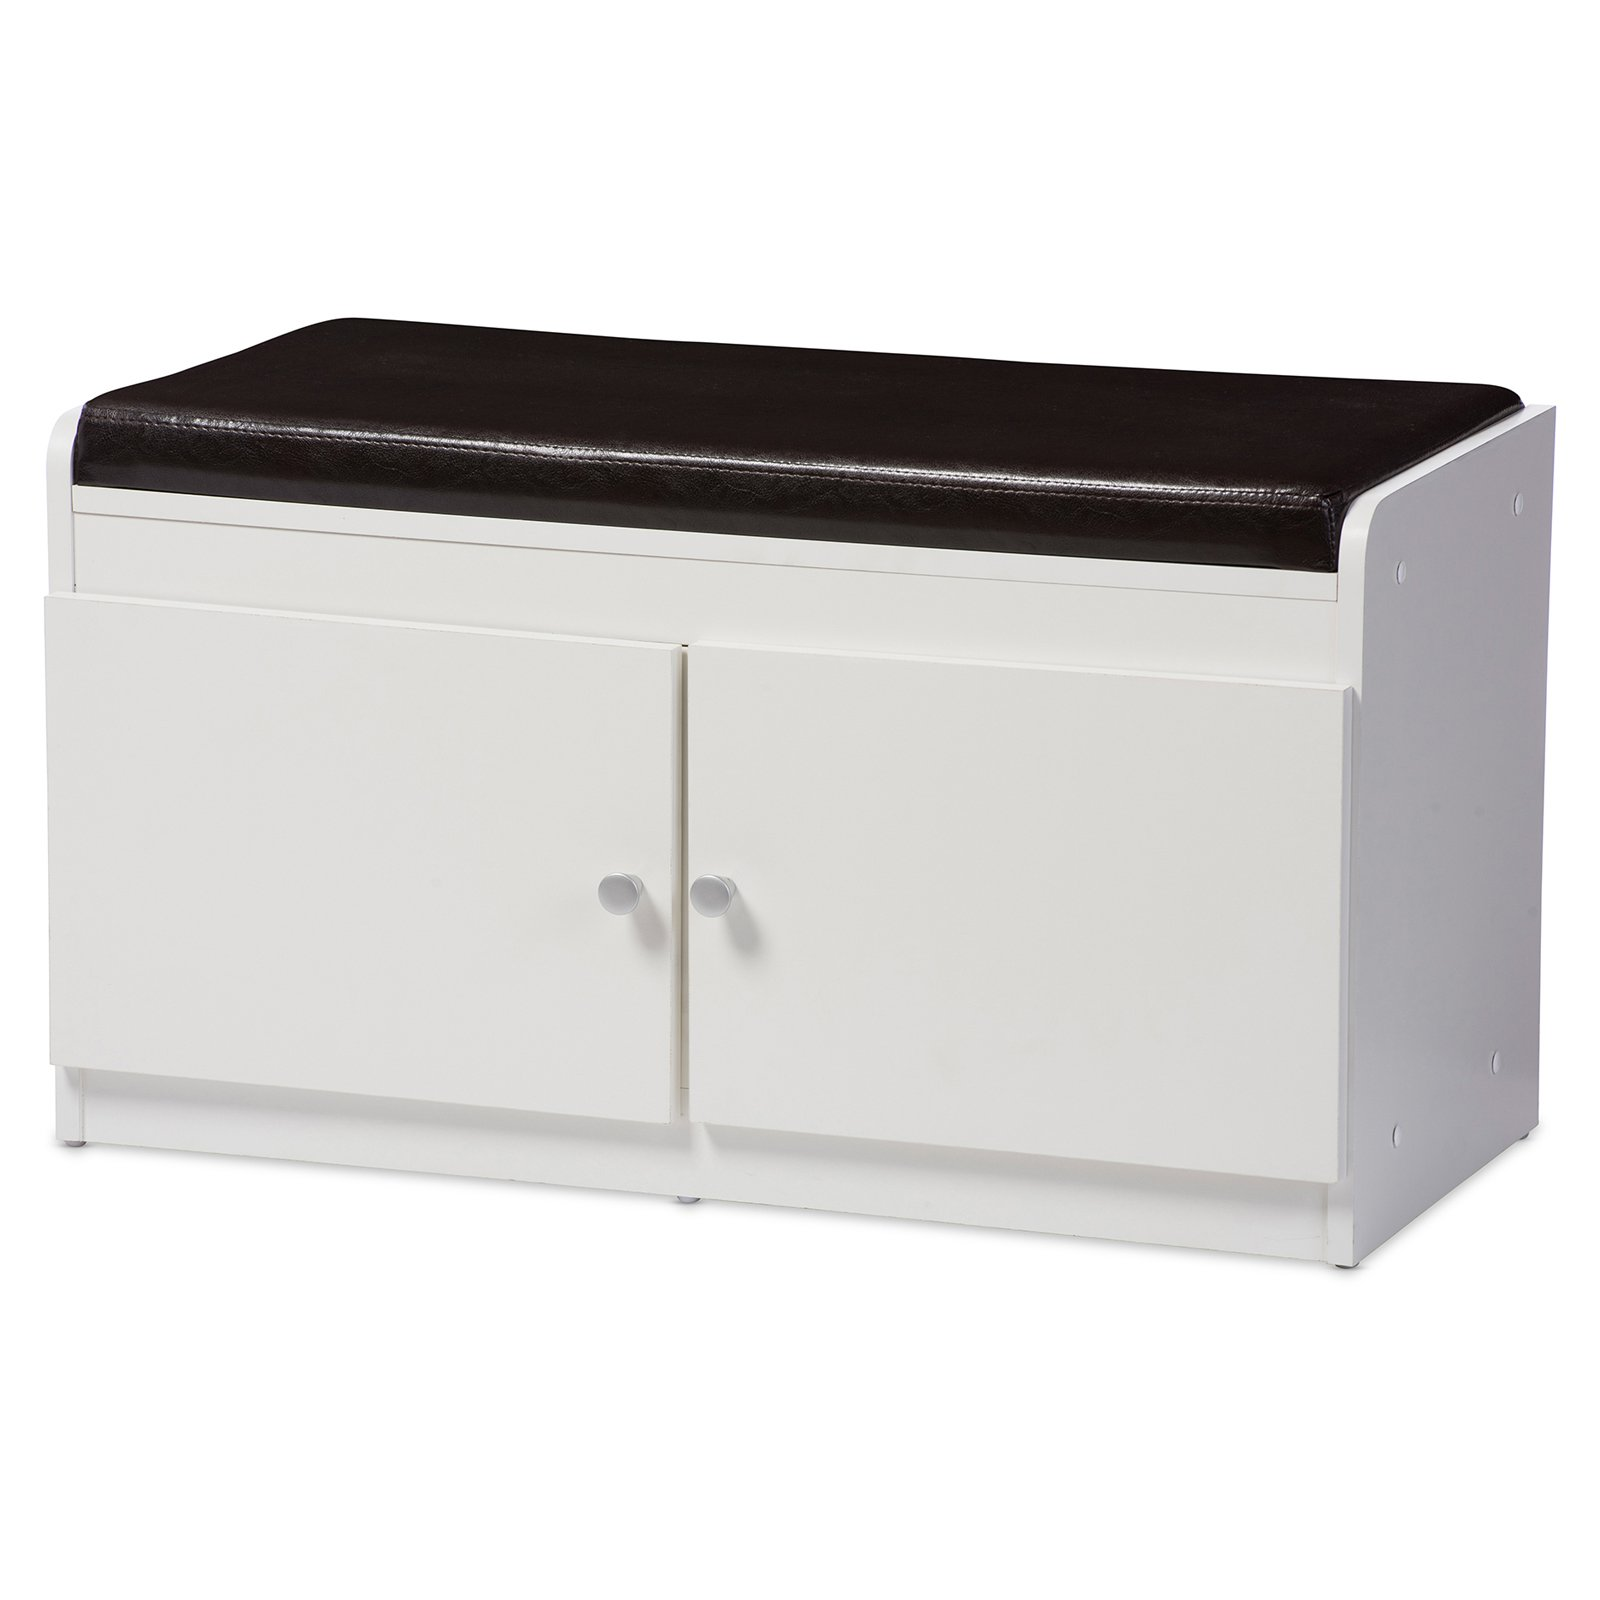 Baxton Studio Margaret Modern and Contemporary White Wood 2-Door Shoe Cabinet with Faux Leather Seating Bench by Wholesale Interiors